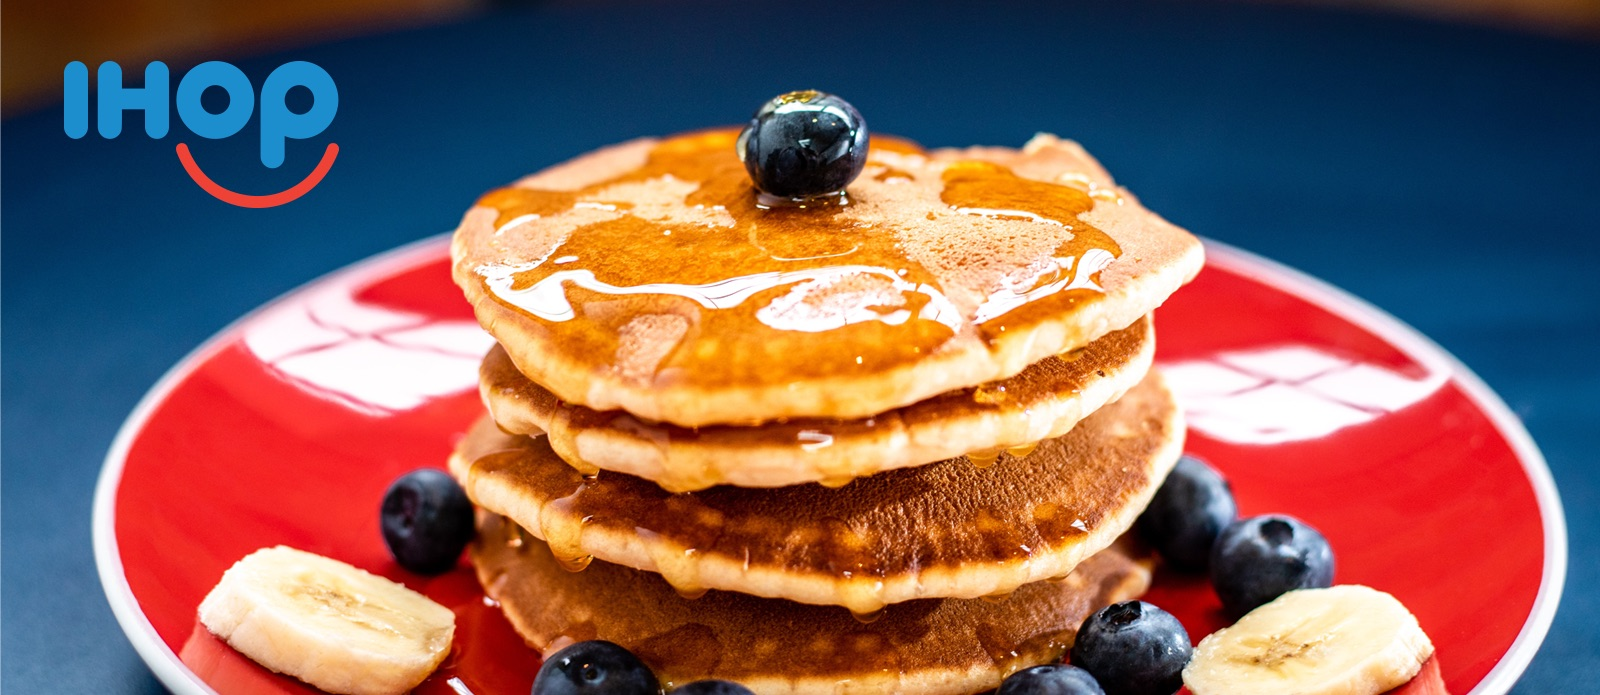 Picture of pancakes for IHOP's viral outrage marketing campaign stunt.